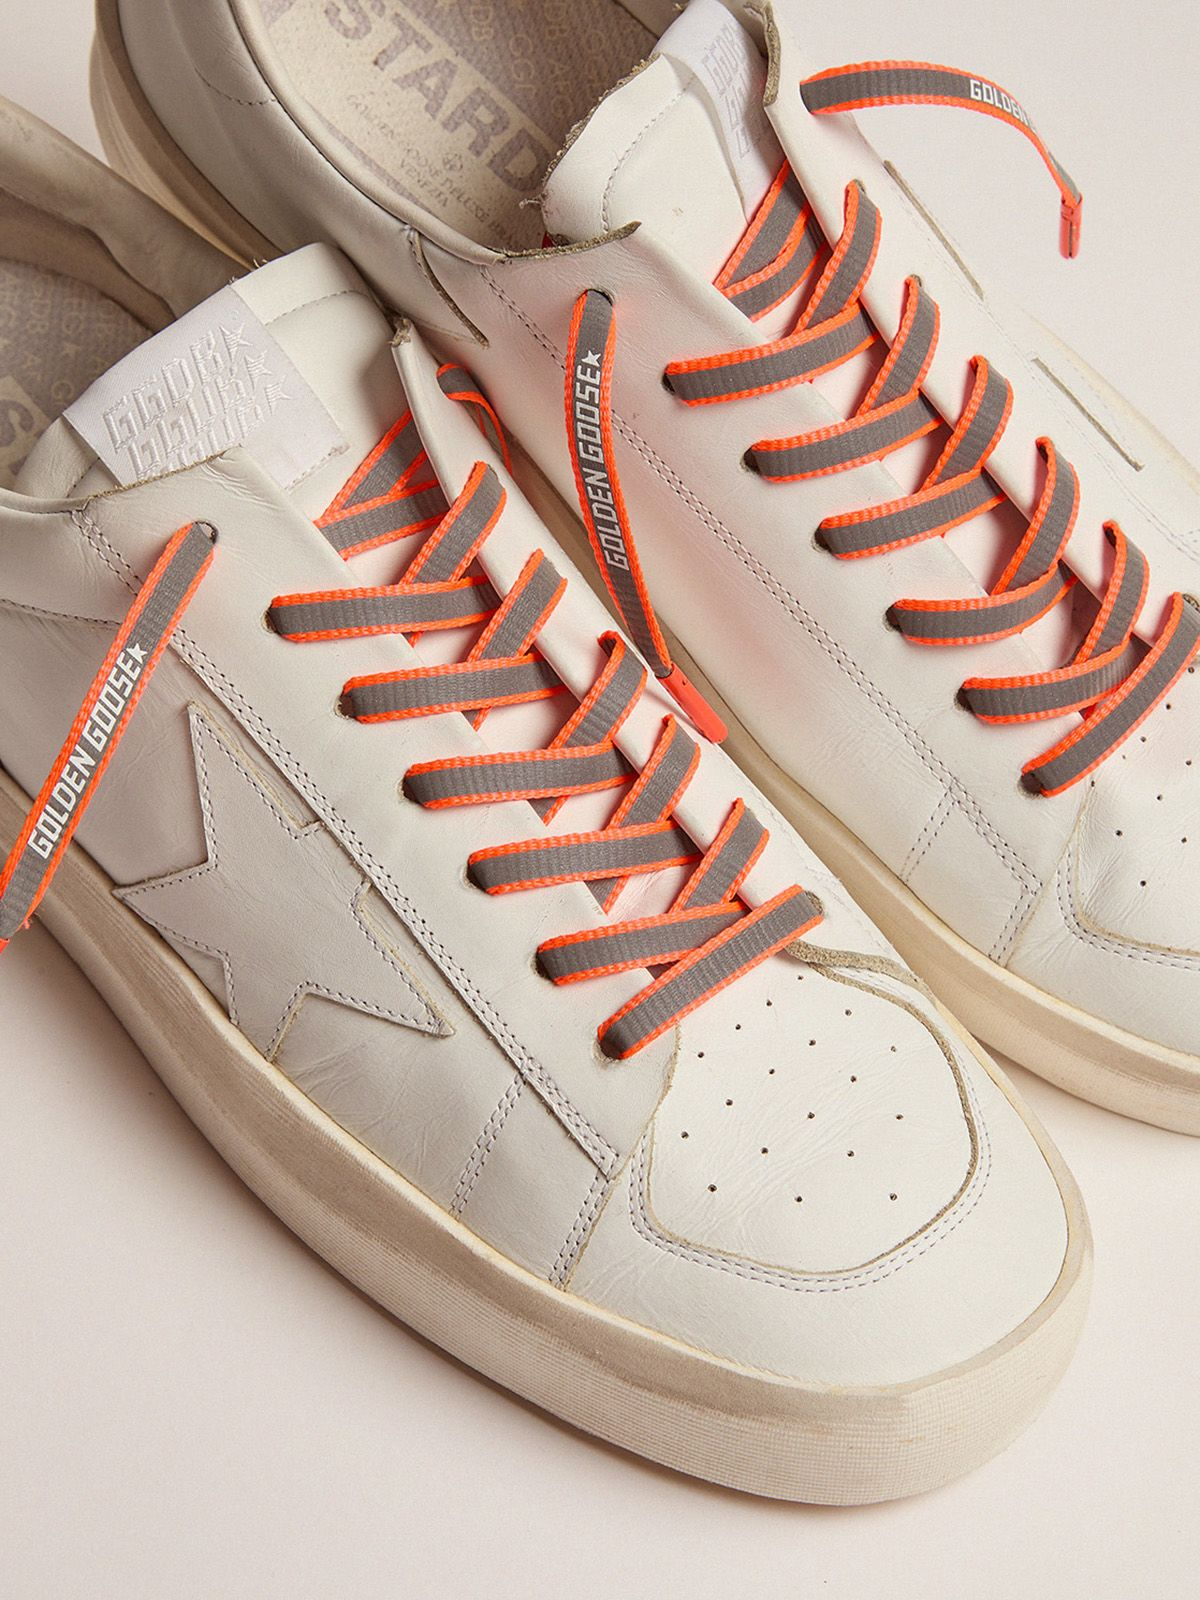 Golden Goose - Men's neon orange reflective laces with logo in